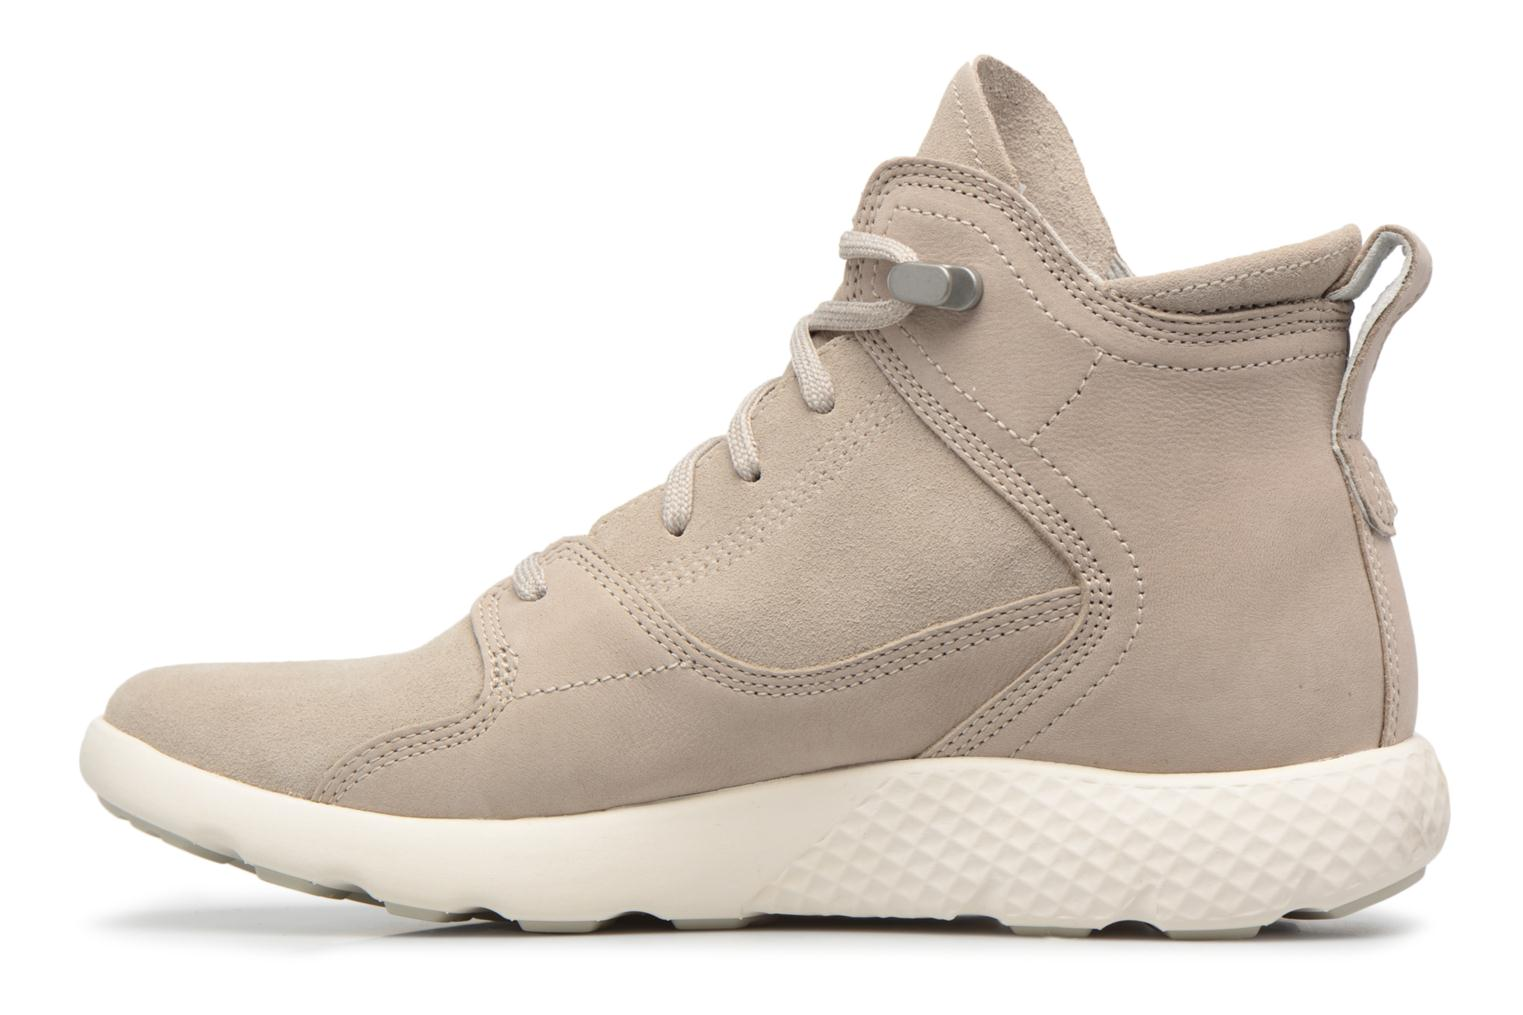 Bottines et boots Timberland FlyRoam Hiker Gris vue face